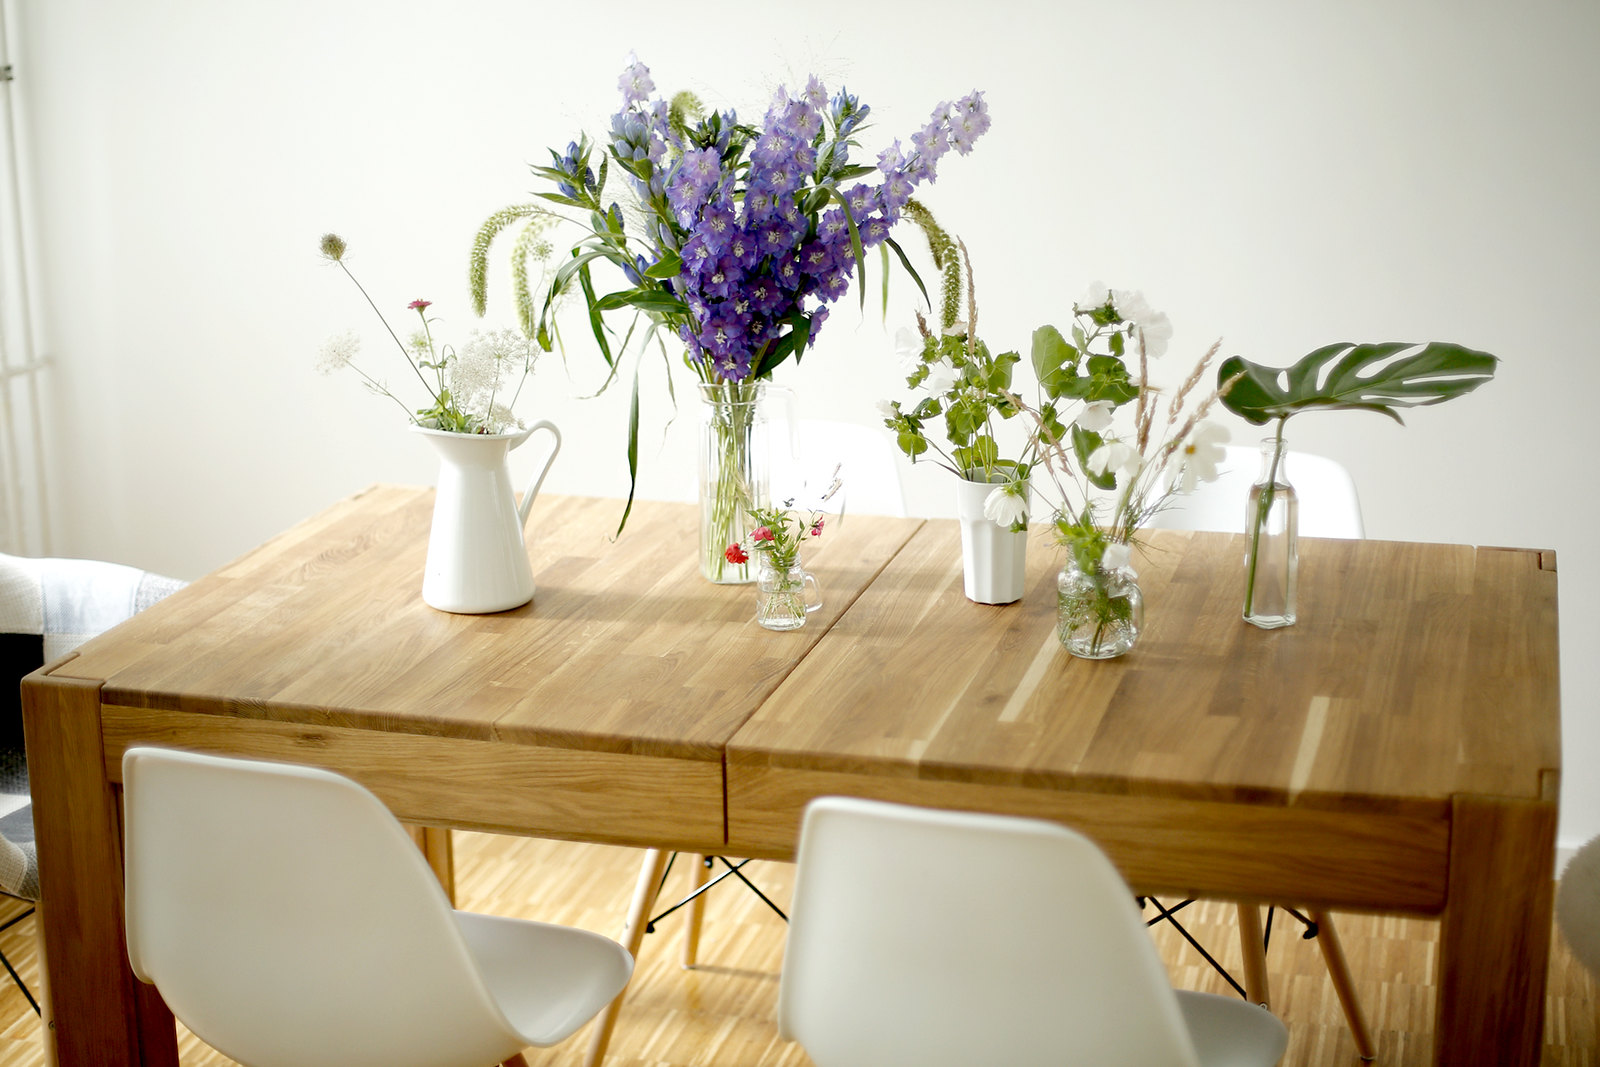 bloomy days flower decor home interior home24 homies24 massive wood table dinner home eames design vitra summer styling table decor lifestyleblog cats & dogs fashionblogger ricarda schernus modeblog loft life 7